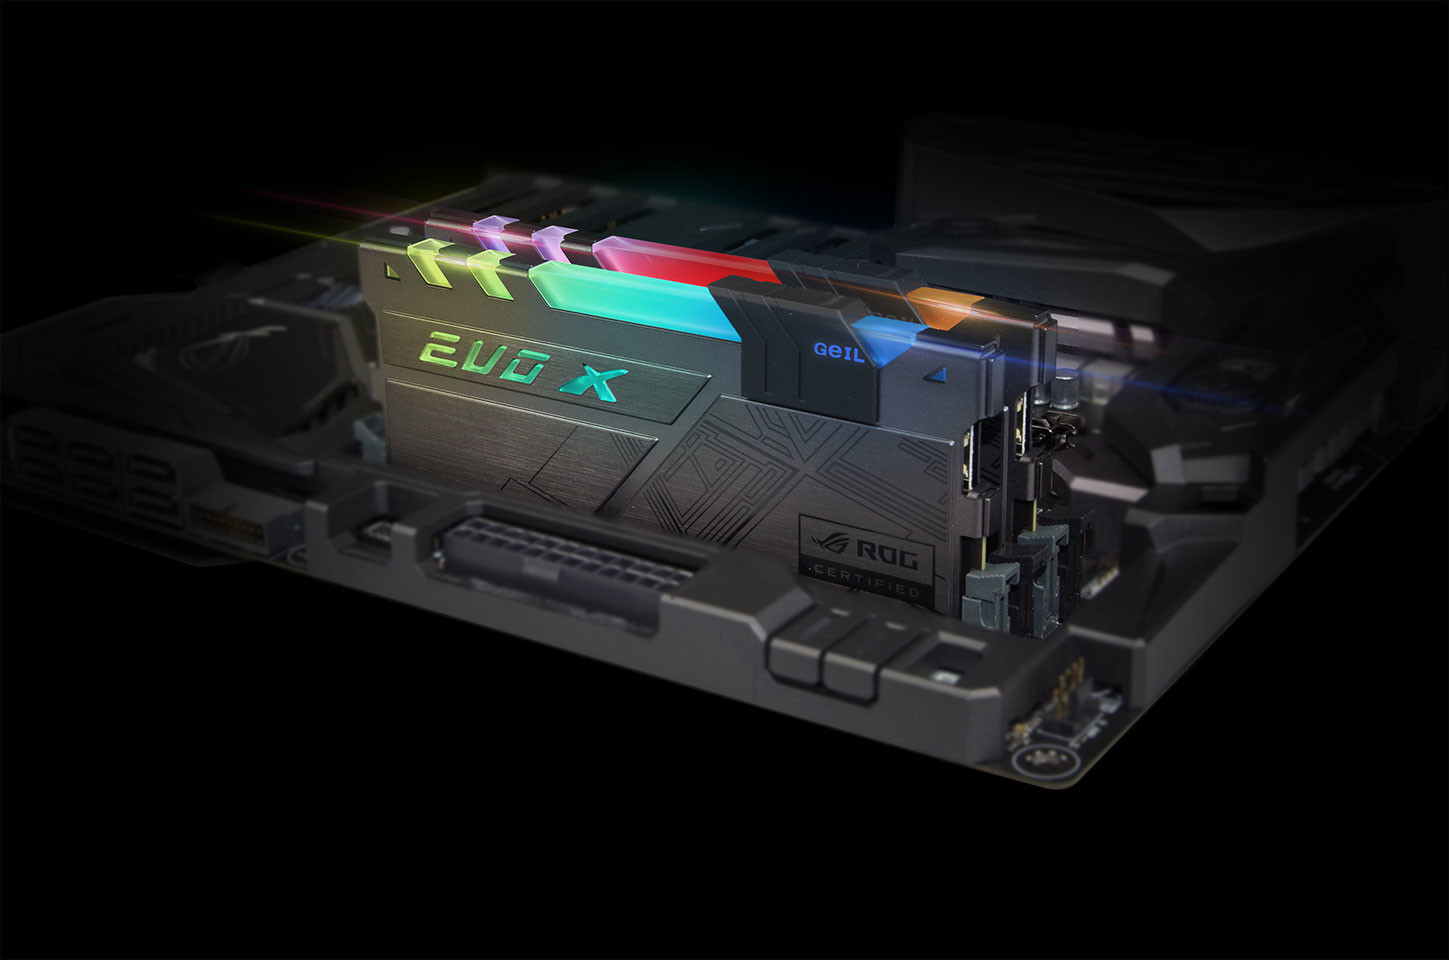 GeIL Announces EVO-X RGB Memory with ASUS ROG Certification